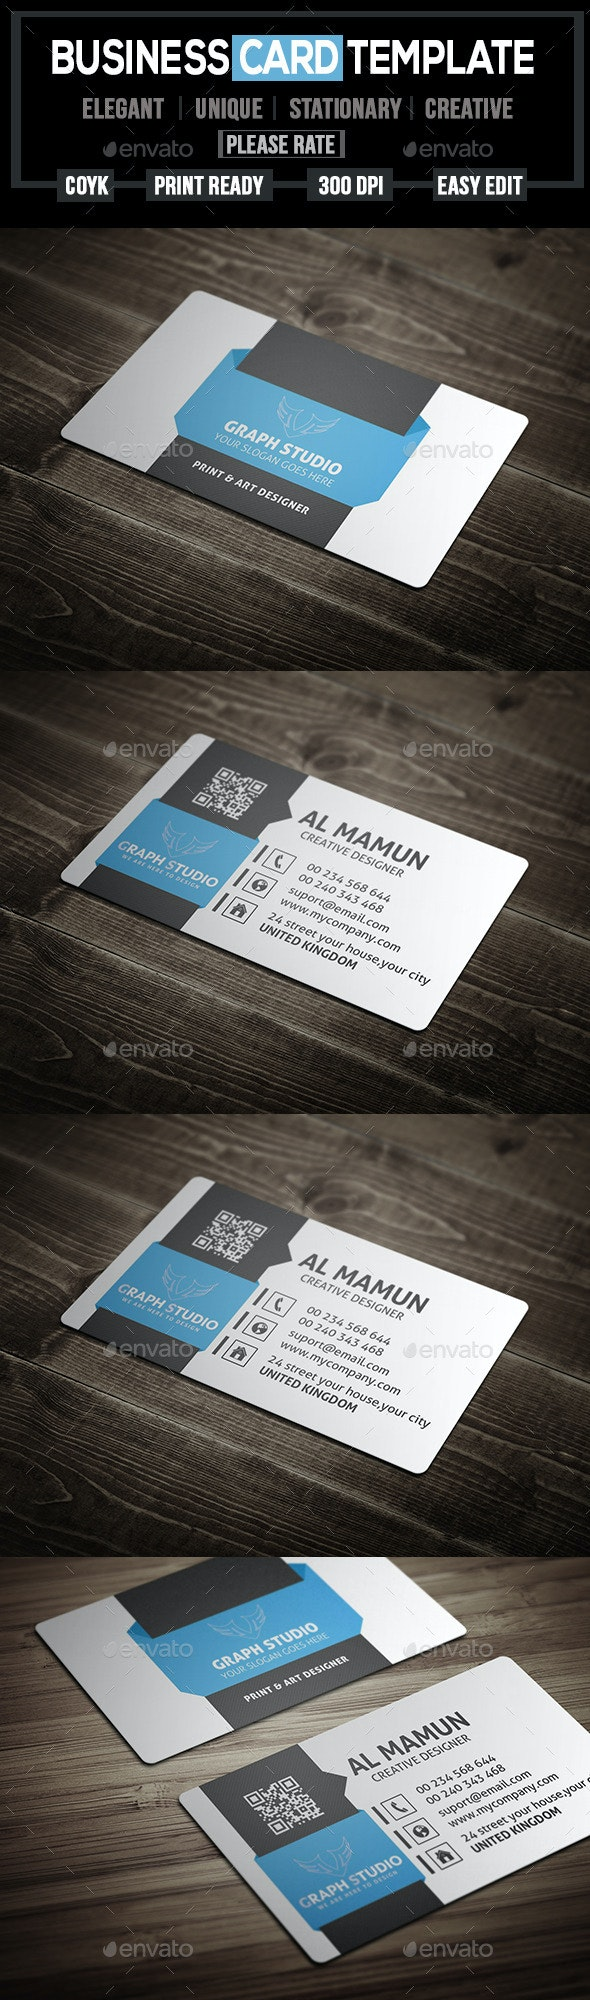 Creative Business Card-Vlo-6 - Creative Business Cards